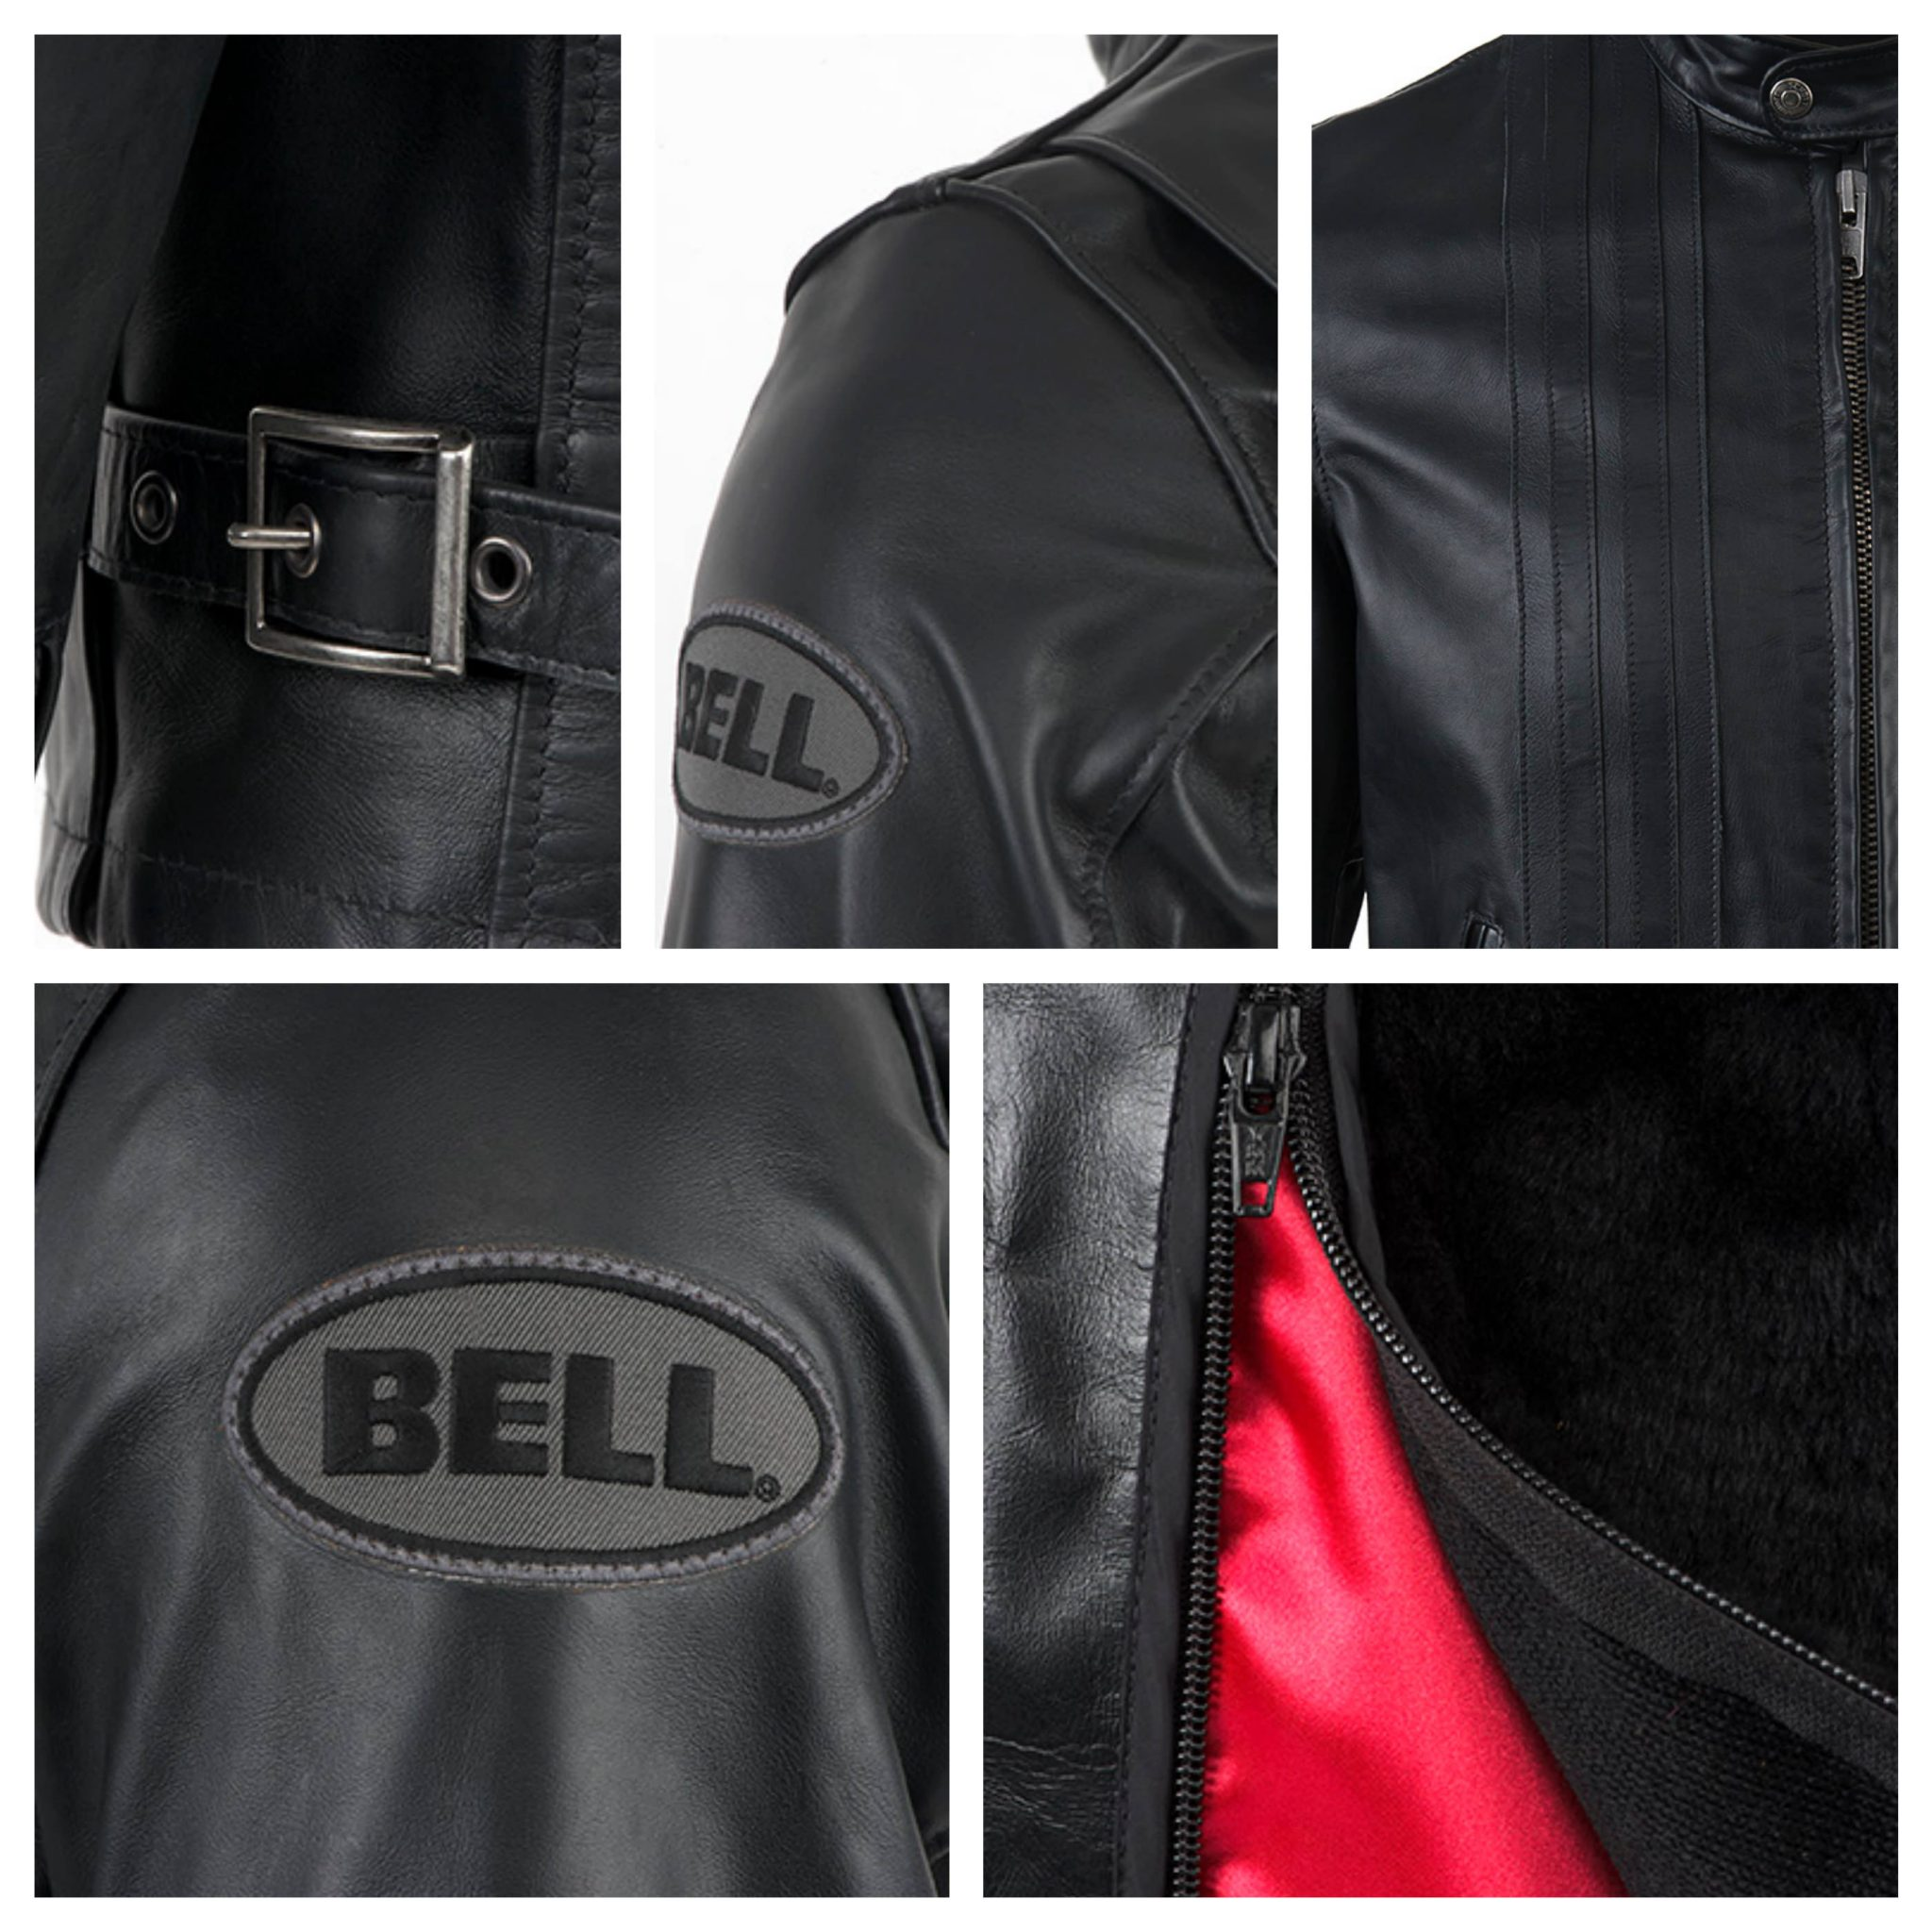 Bell Schott Leather Jacket